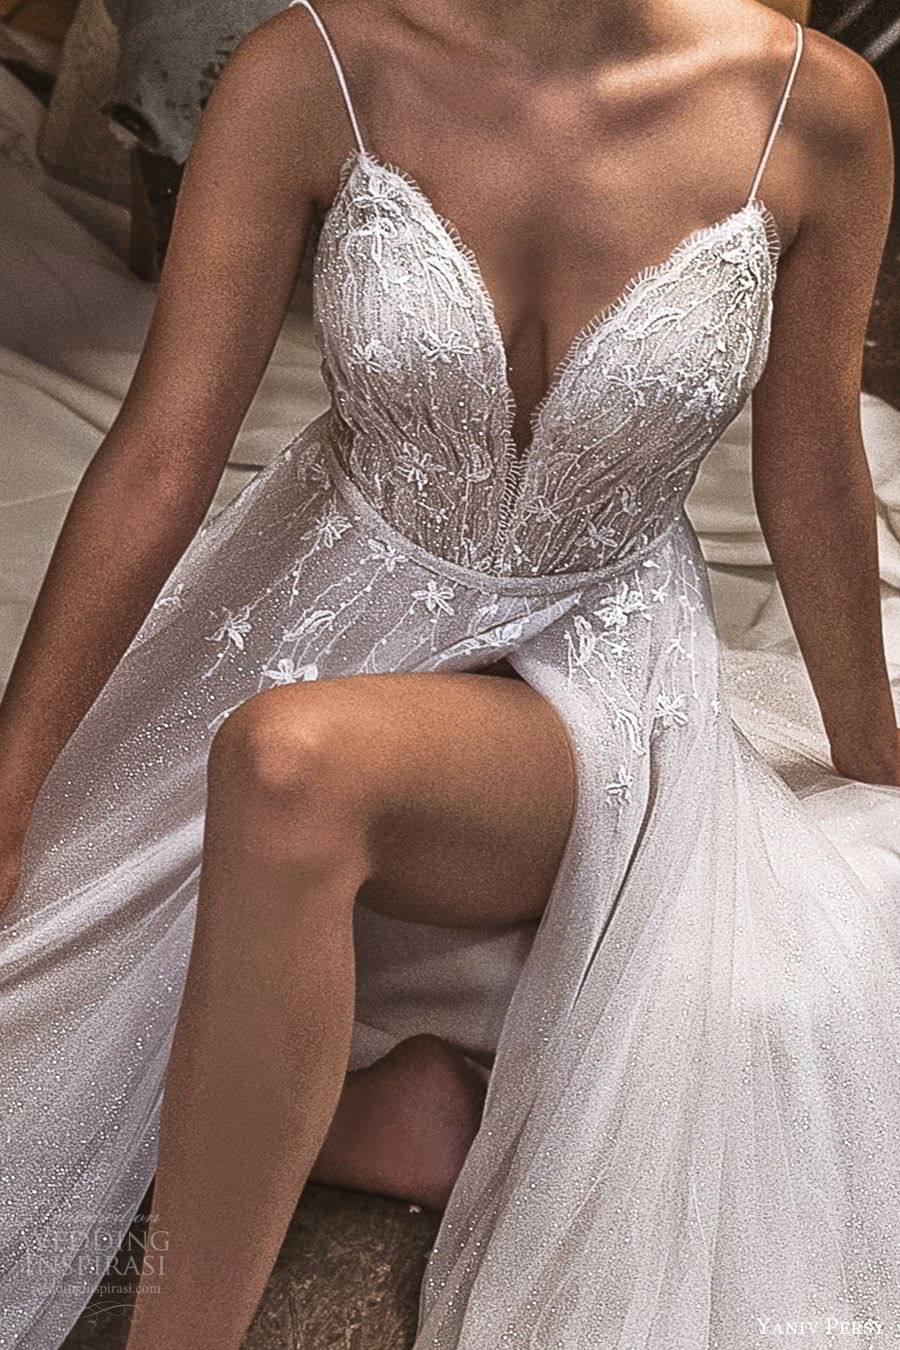 yaniv persy fall 2019 lavish bridal sleevless thin straps sweetheart neckline beaded bodice a line wedding dress slit skirt romantic sexy glitzy (3) zv